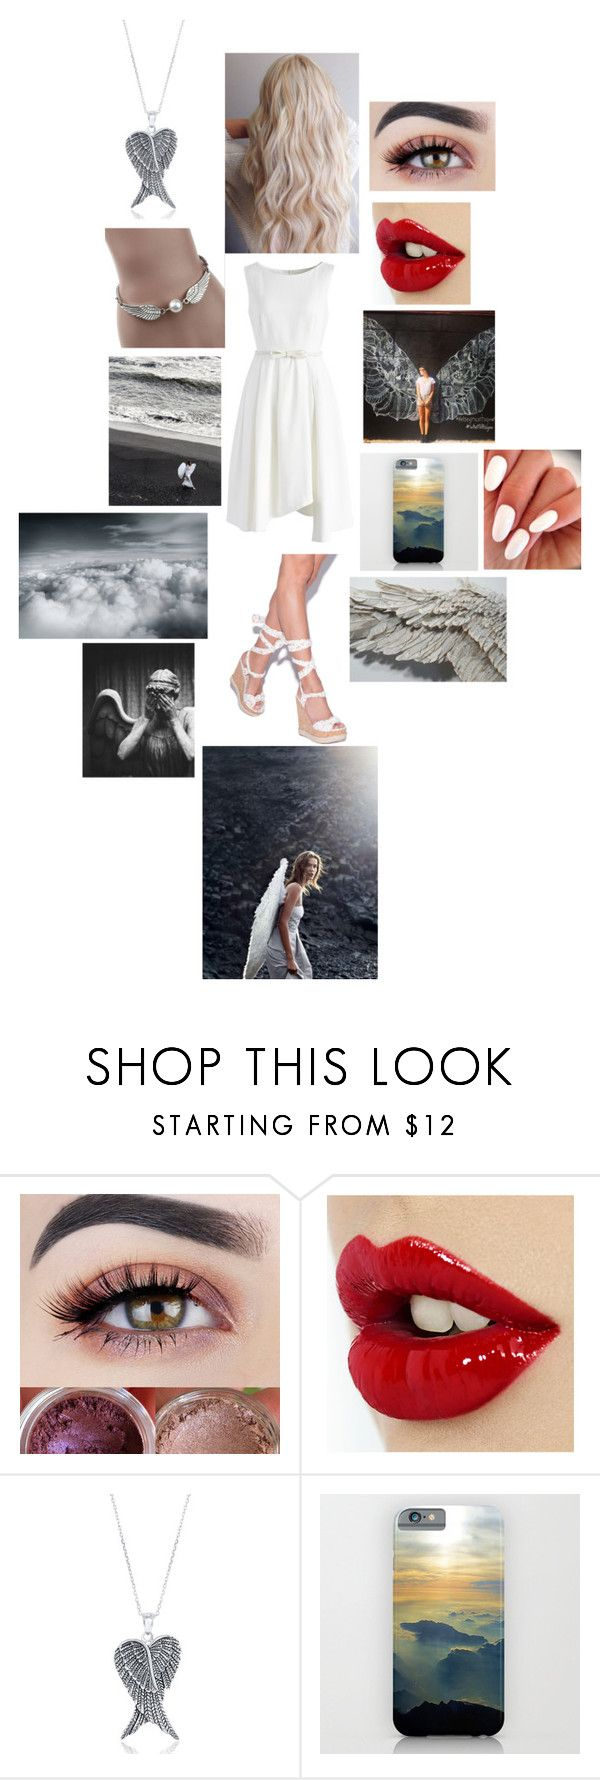 """""""The supernatural - Angel"""" by rosemarieyoung ❤ liked on Polyvore featuring beauty, GET LOST, La Preciosa and Chicwish"""